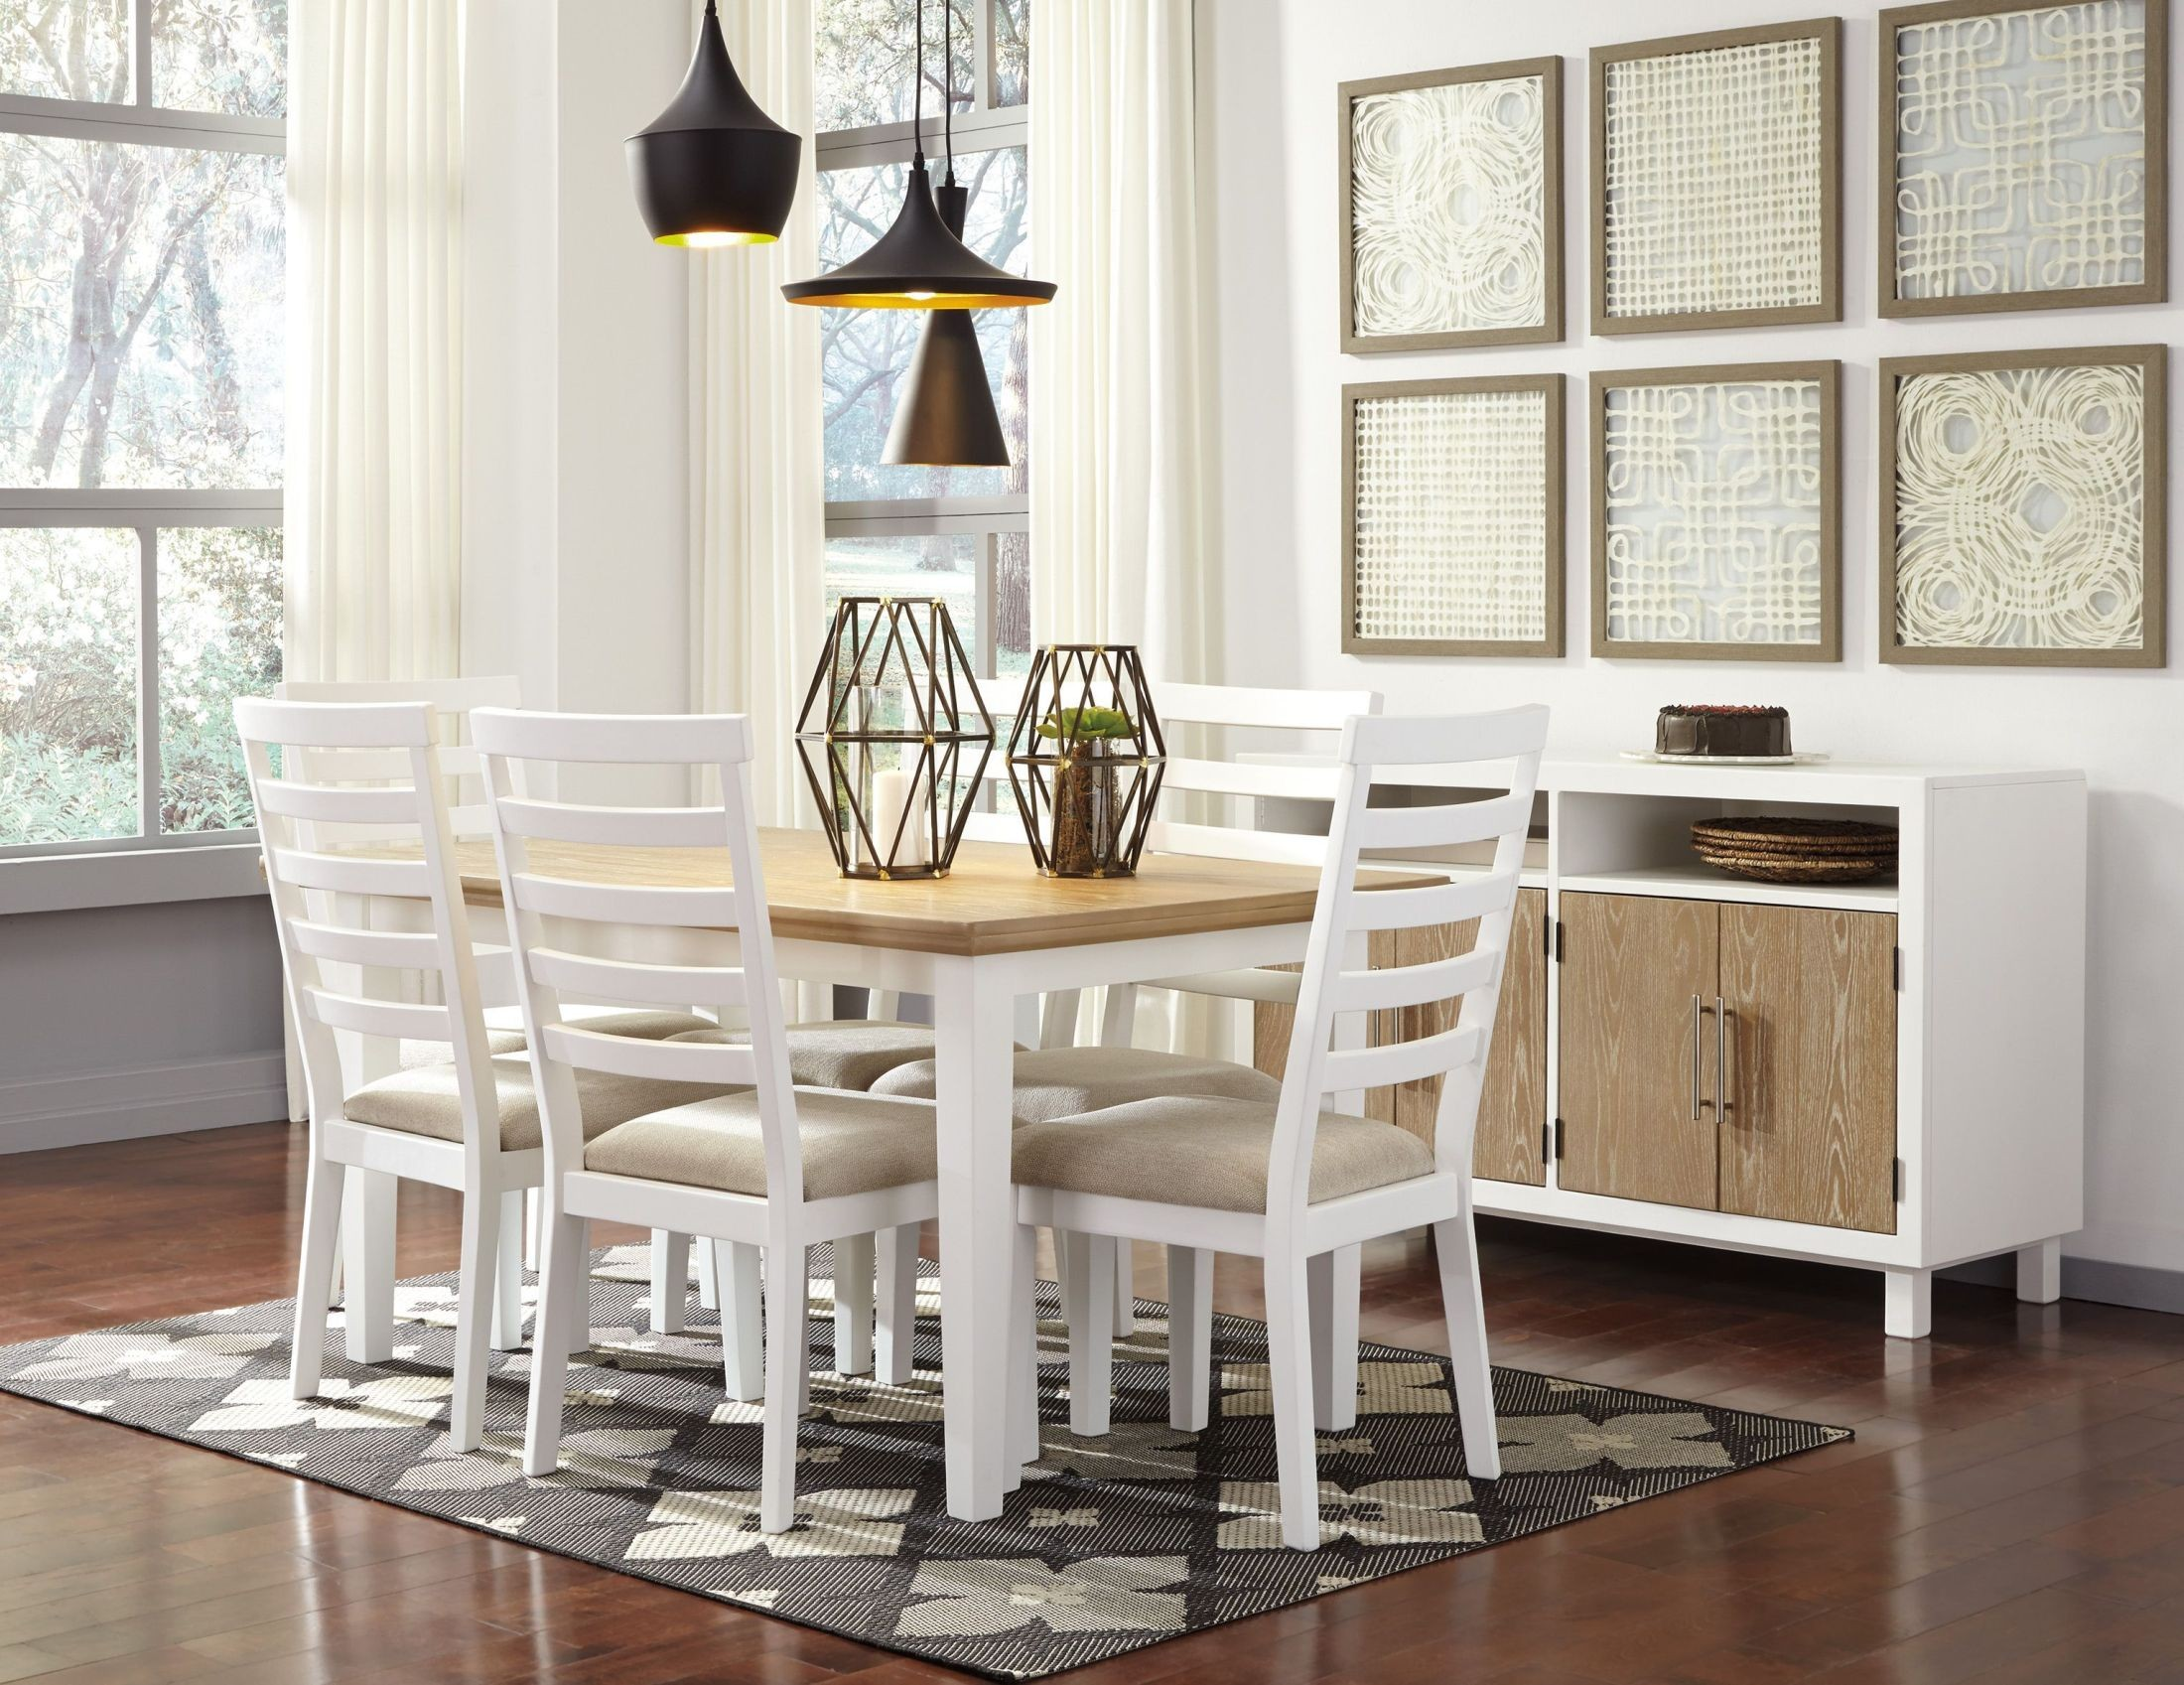 Gardomi white and light brown rectangular dining room set for Rectangular dining room light